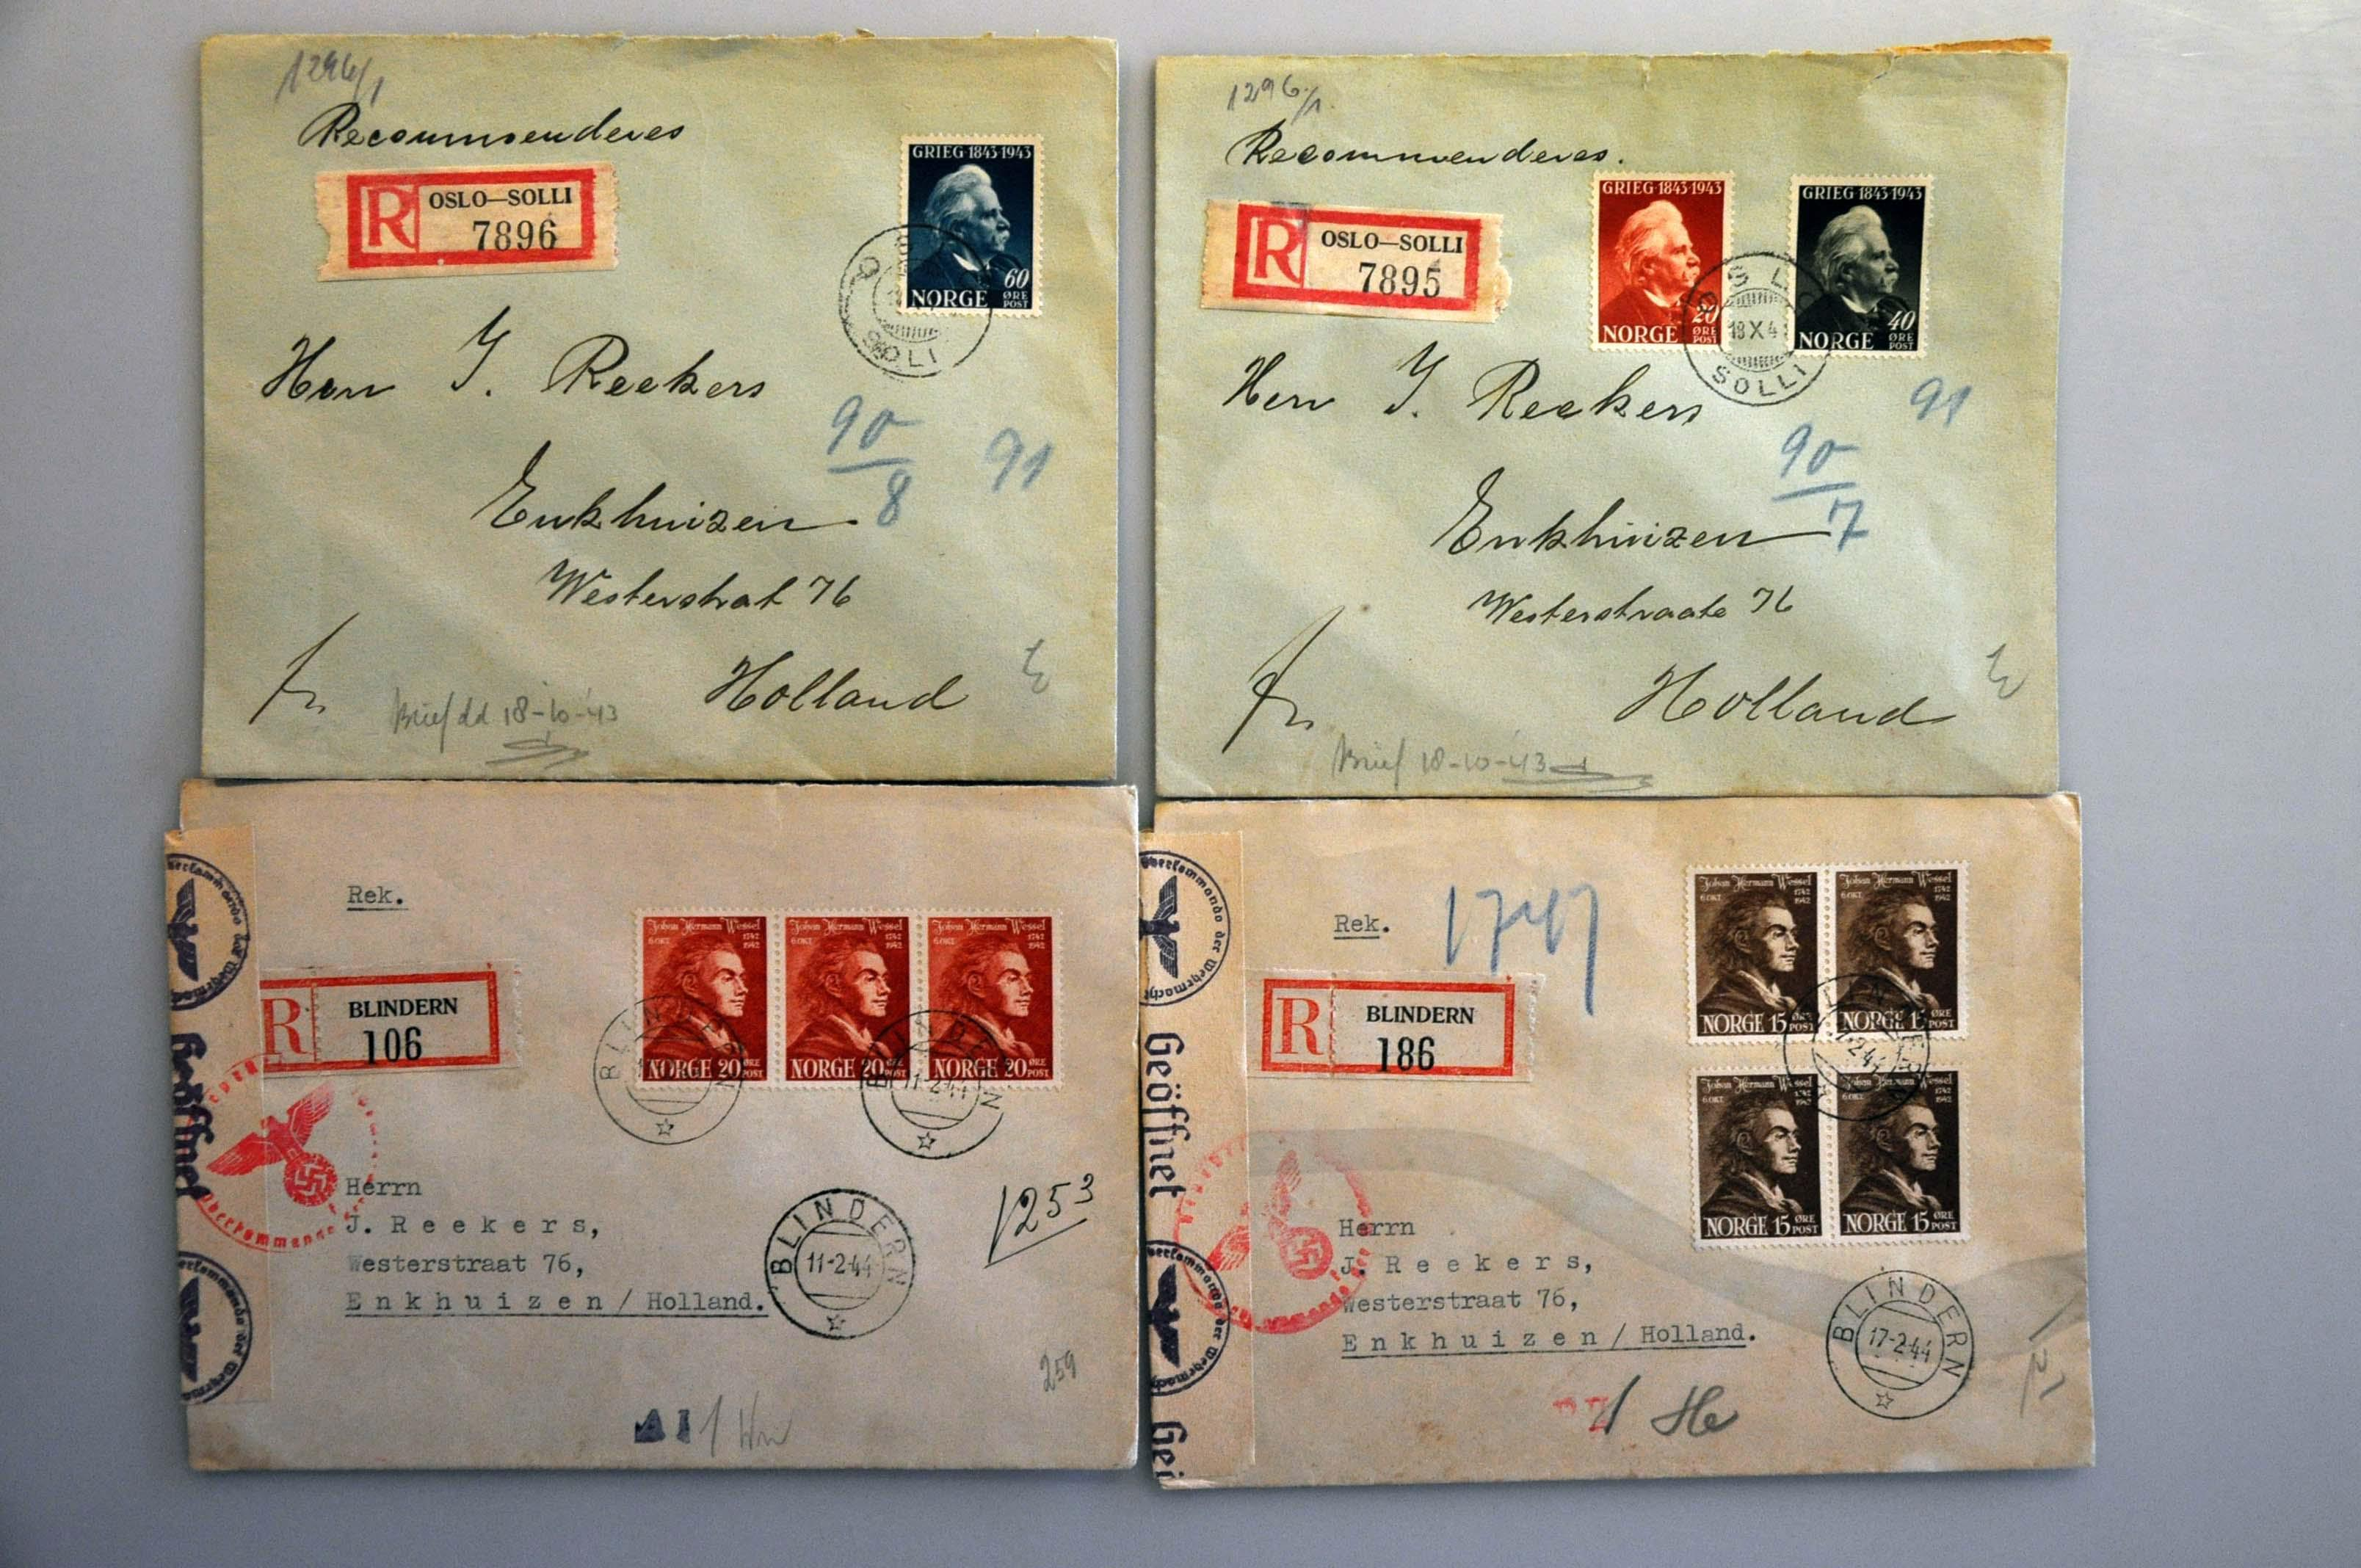 Lot 1019 - Topics and Miscellaneous world war ii -  Corinphila veilingen Auction 235: Postal History WW2 - The Stefan Drukker Collection